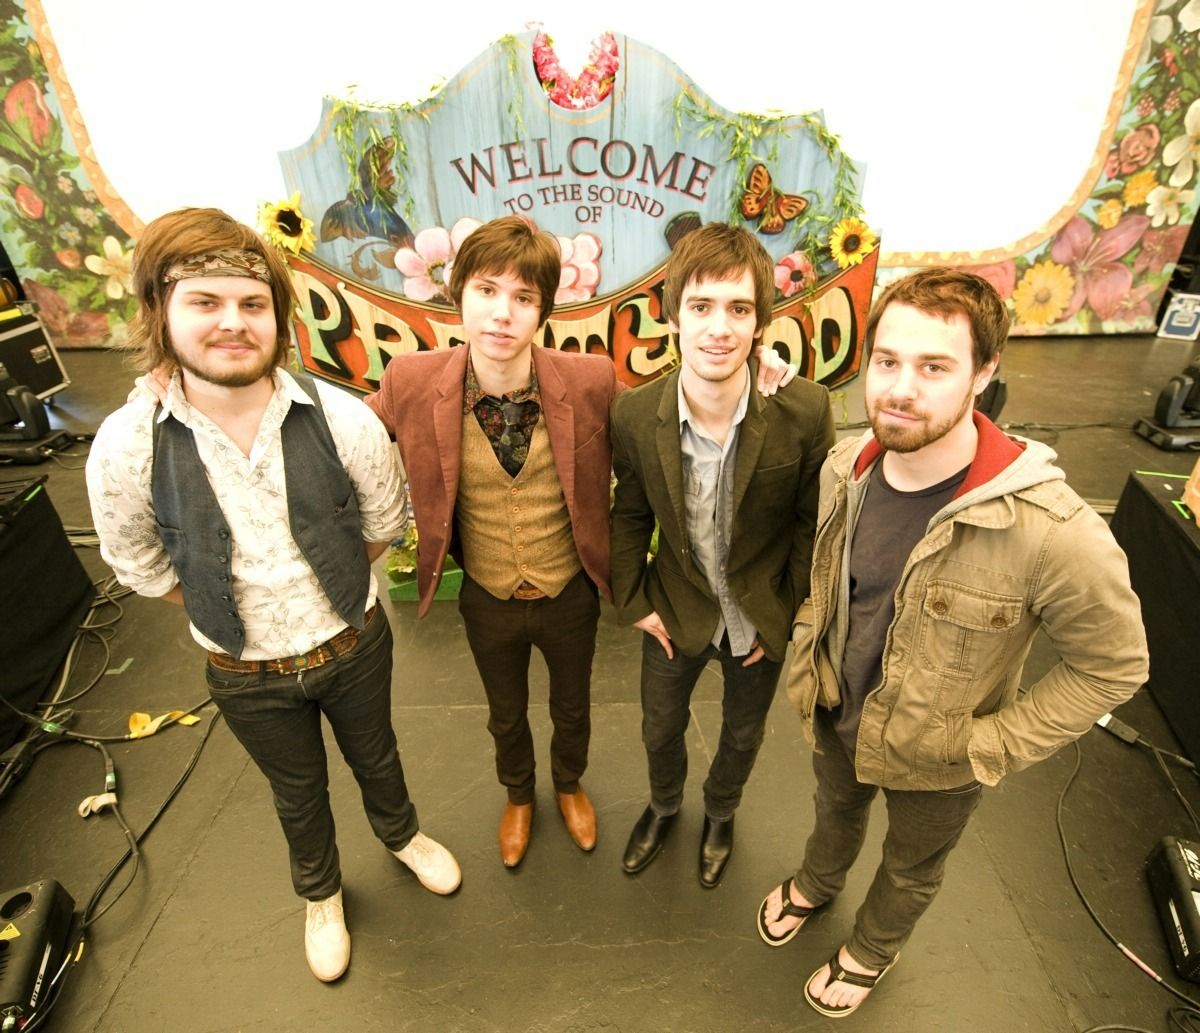 Aww Fetus Panic! Welcome To The Sound Of Pretty Odd